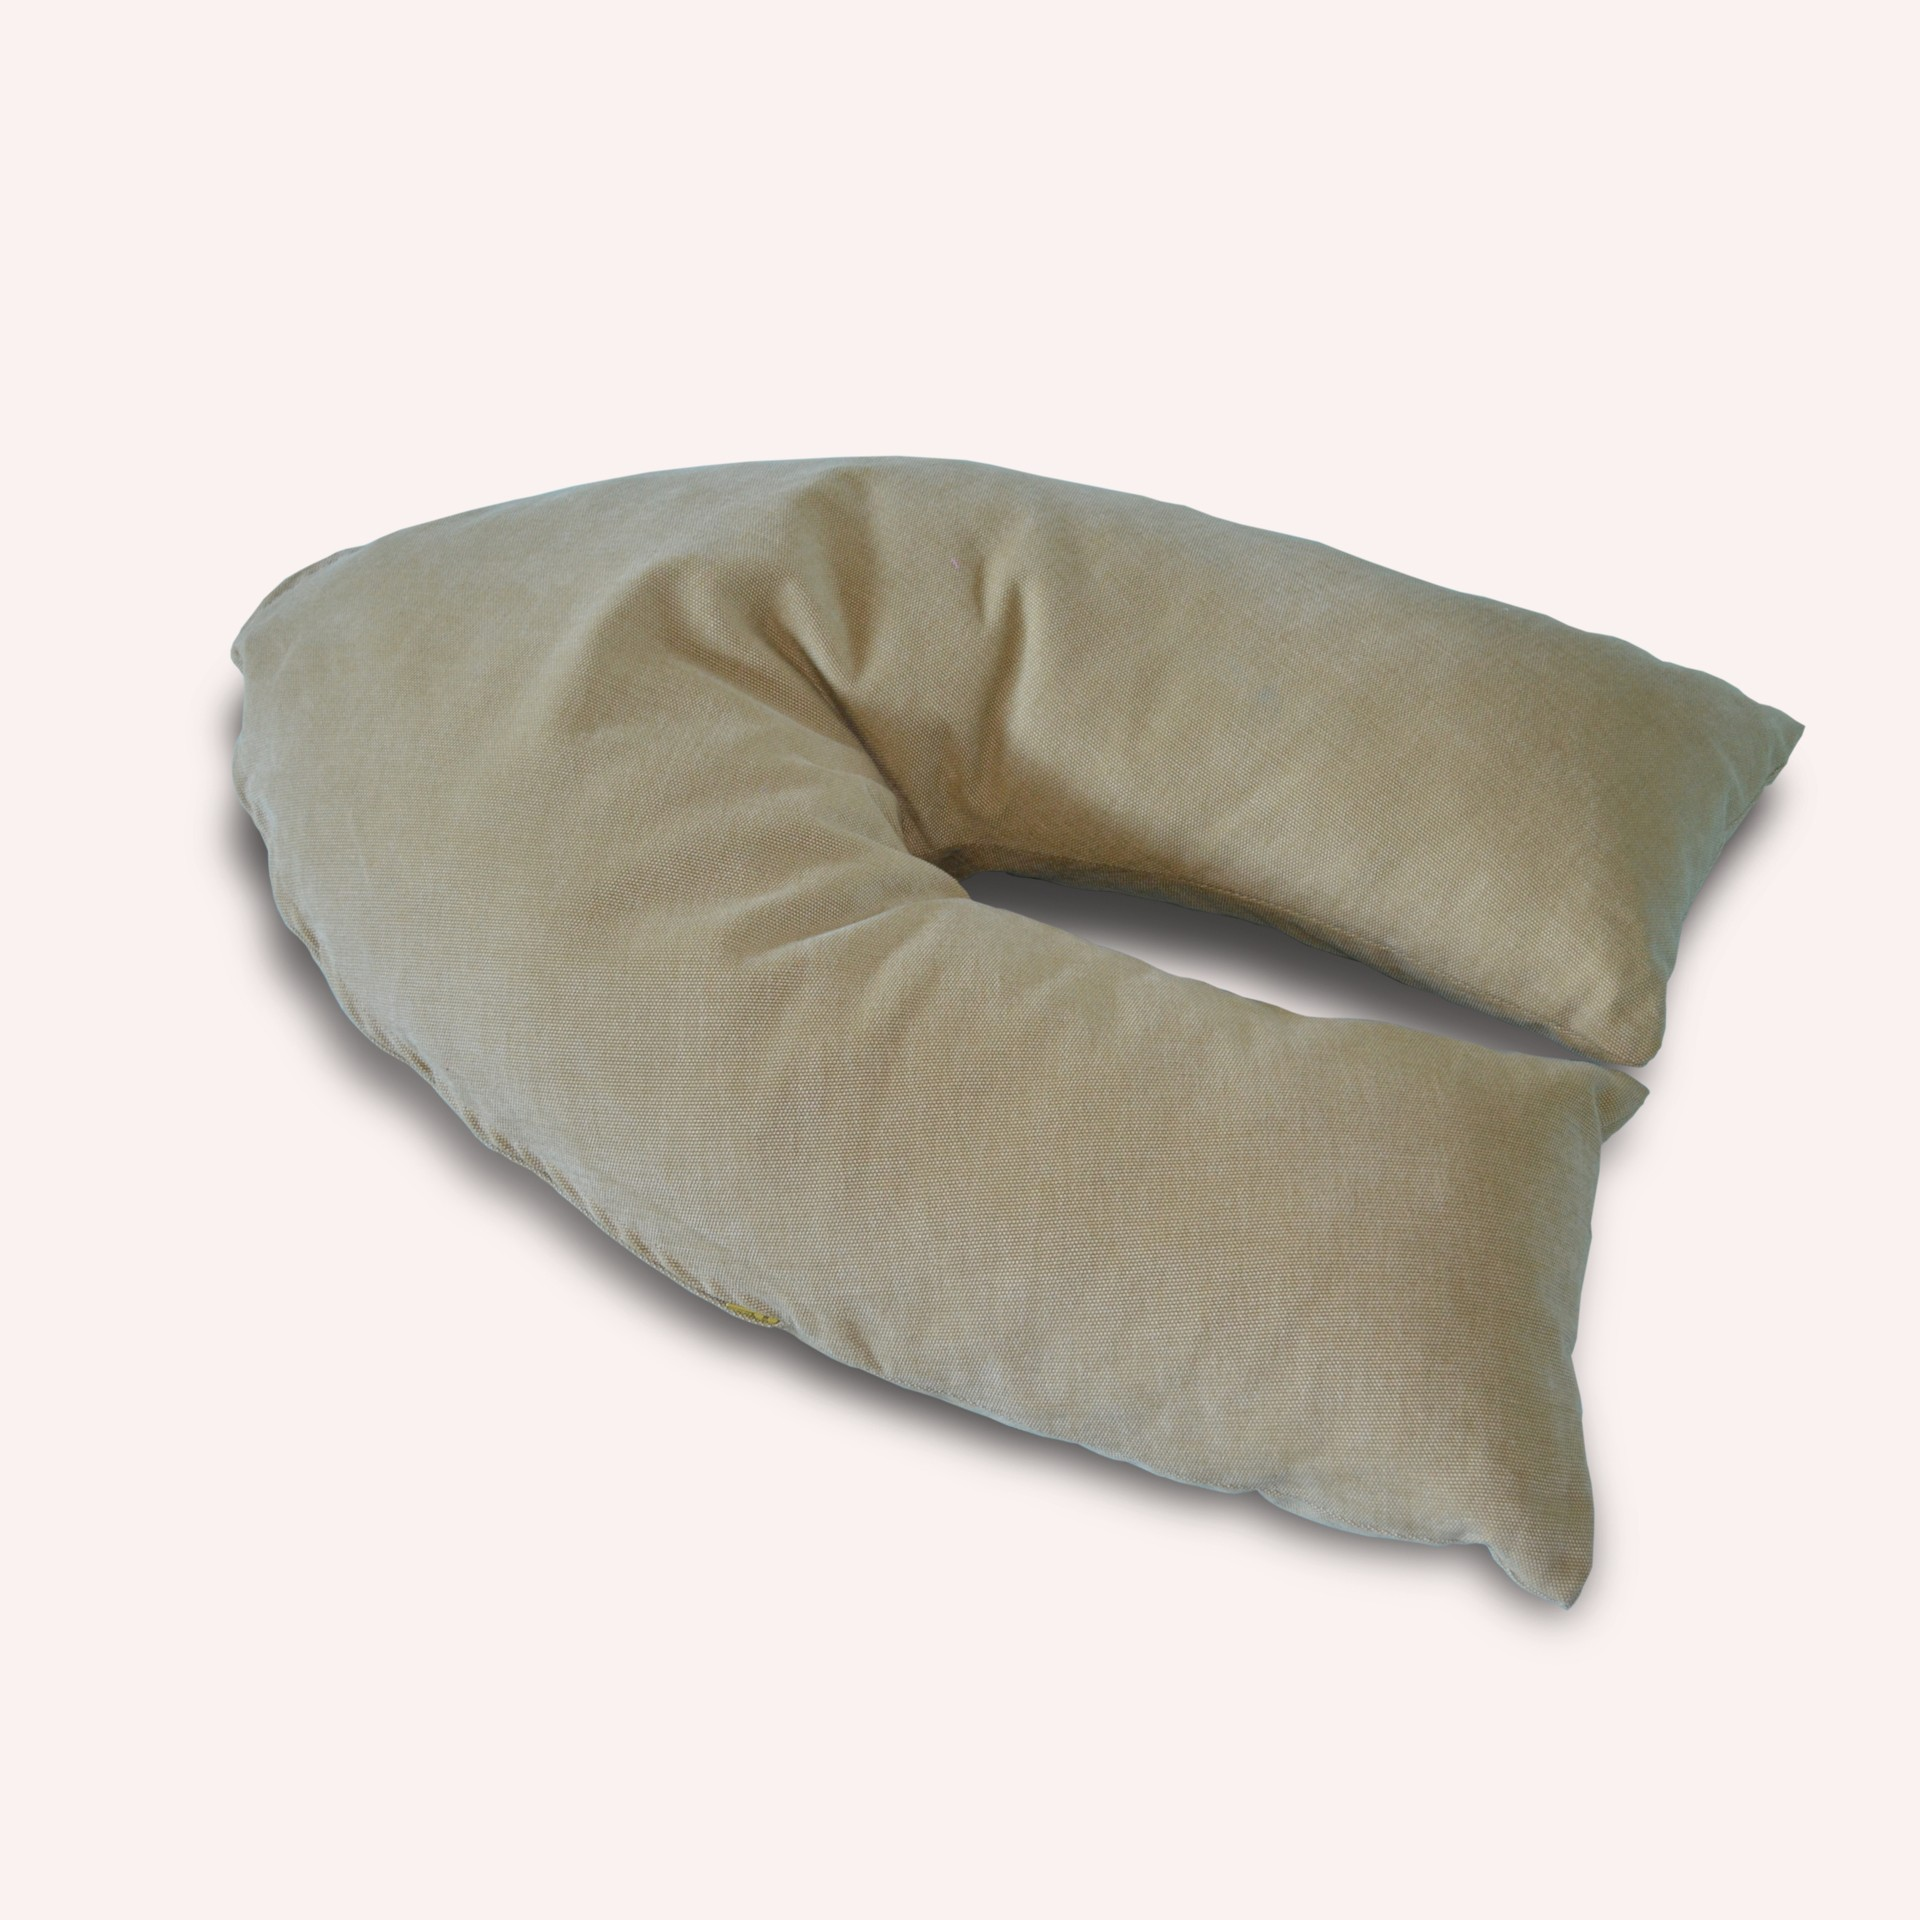 Maternity & nursing pillow Lito